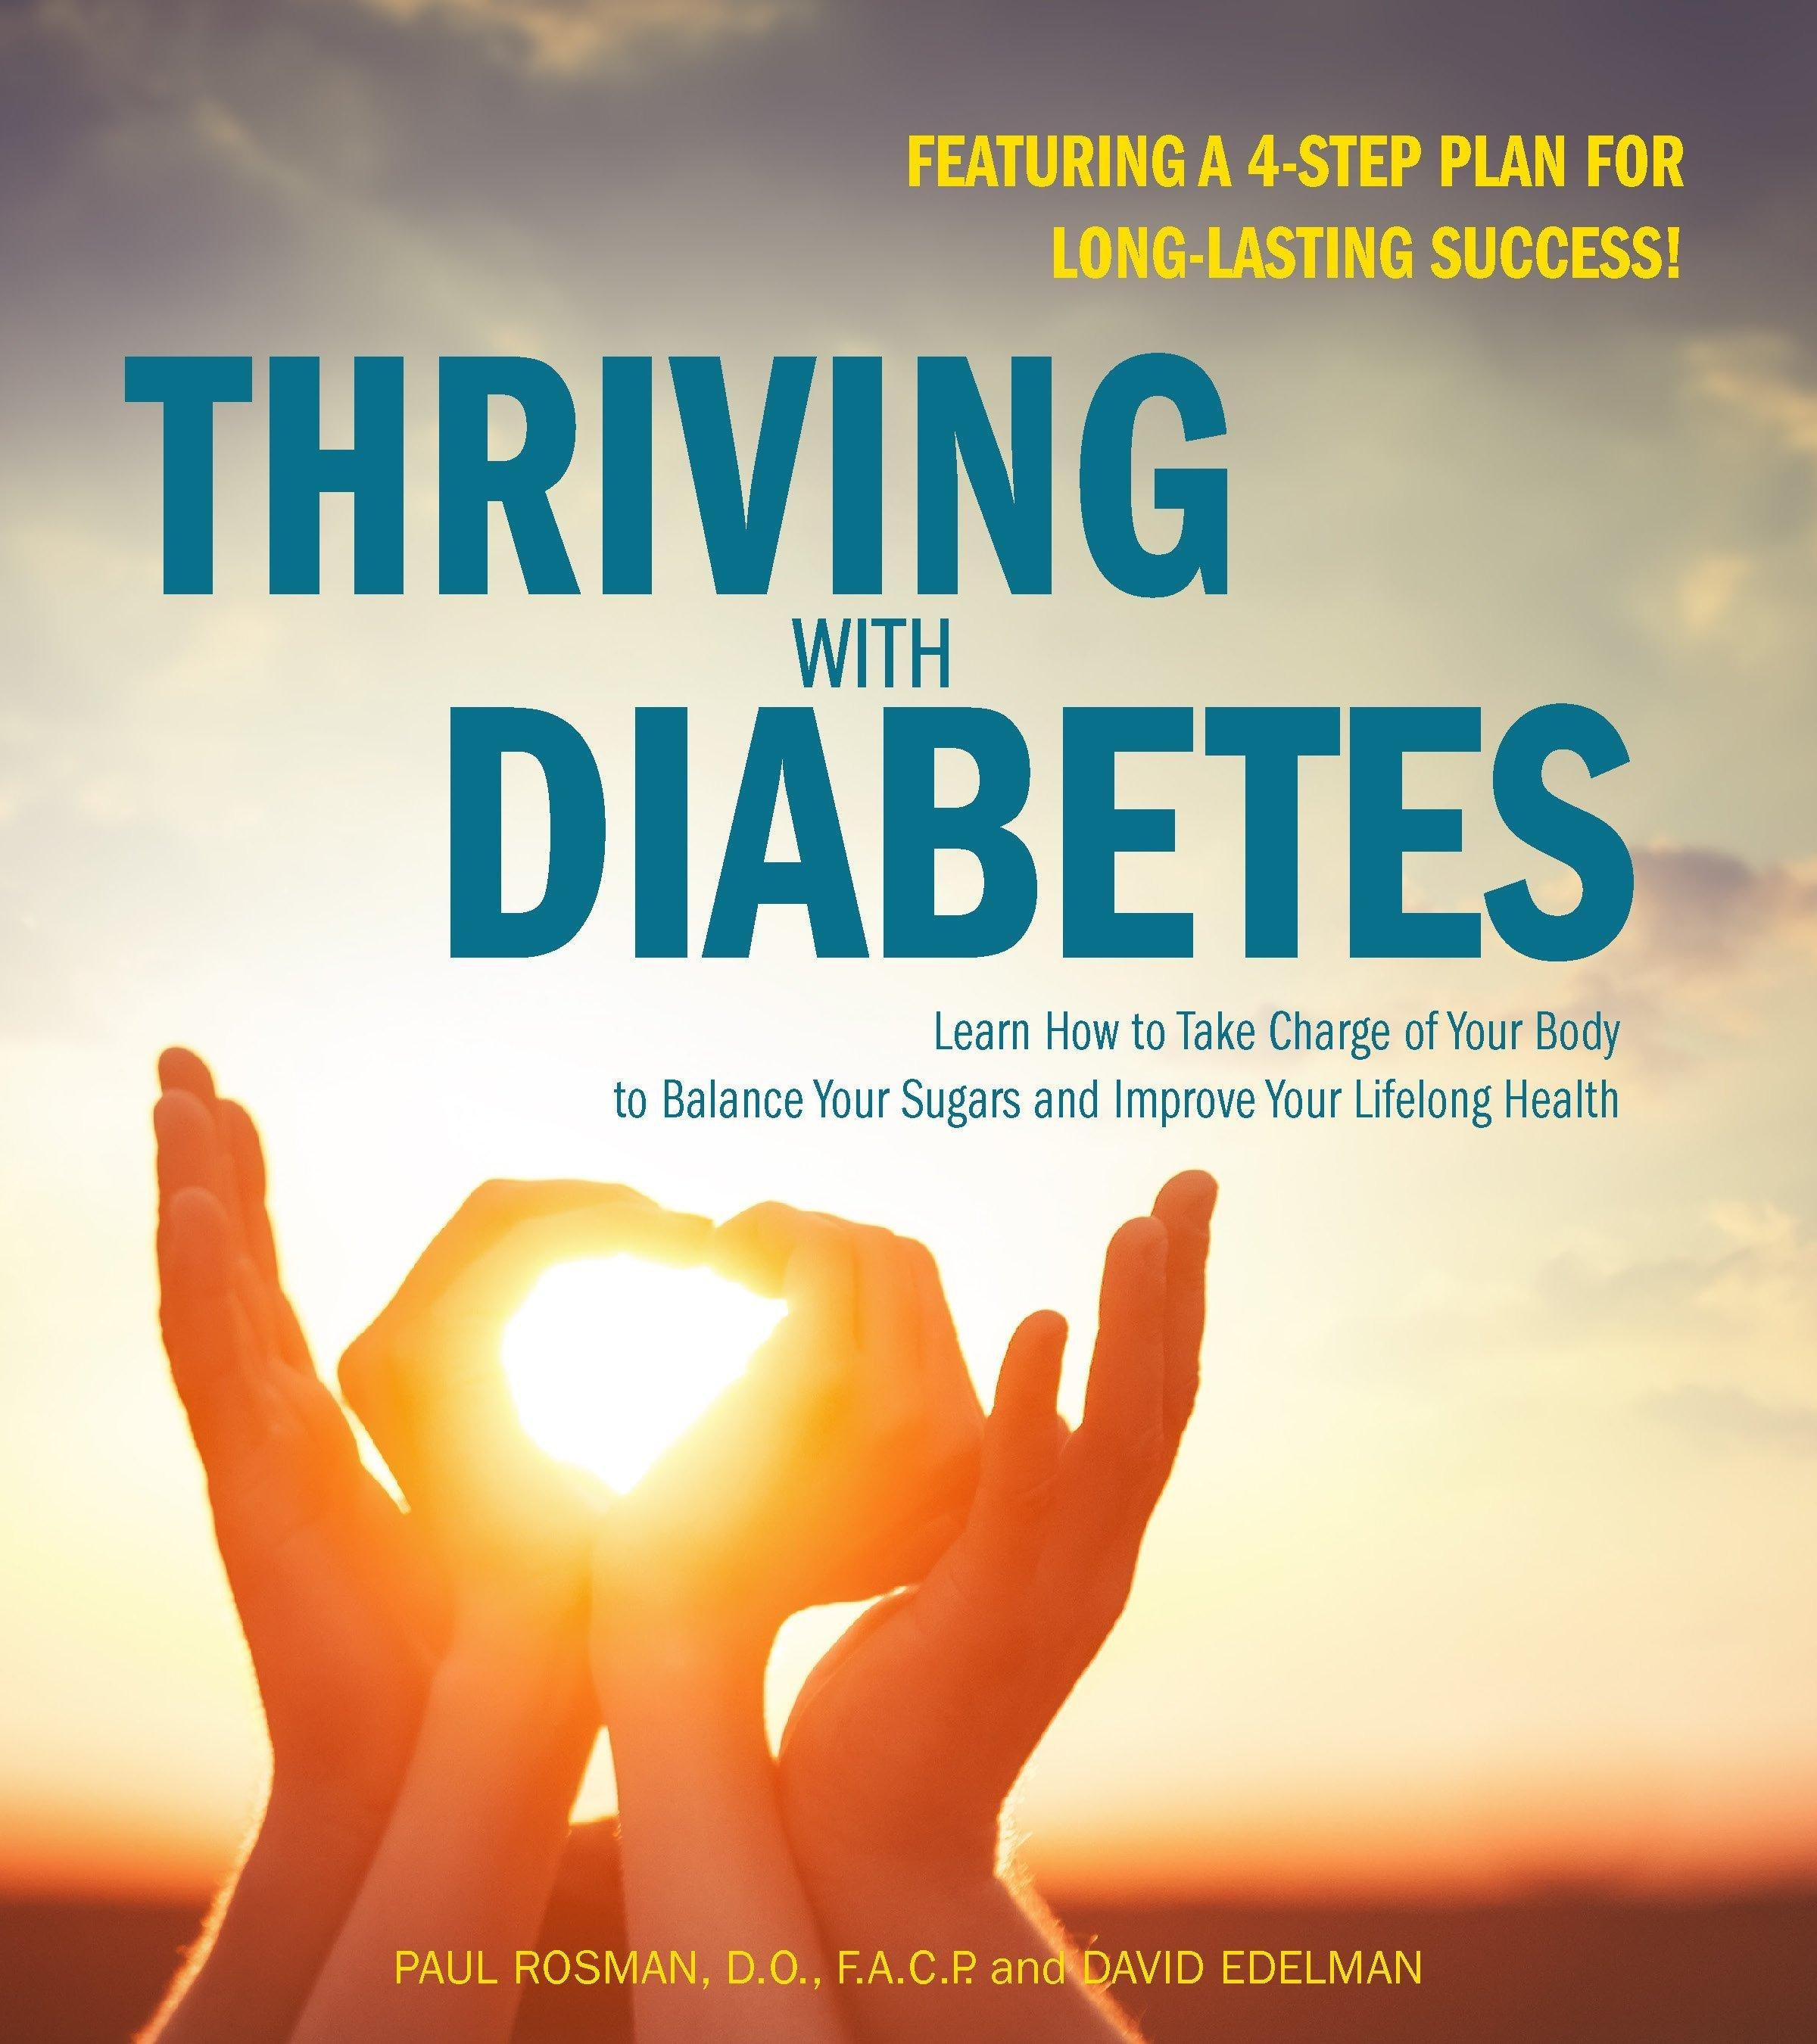 Thriving With Diabetes: The Book